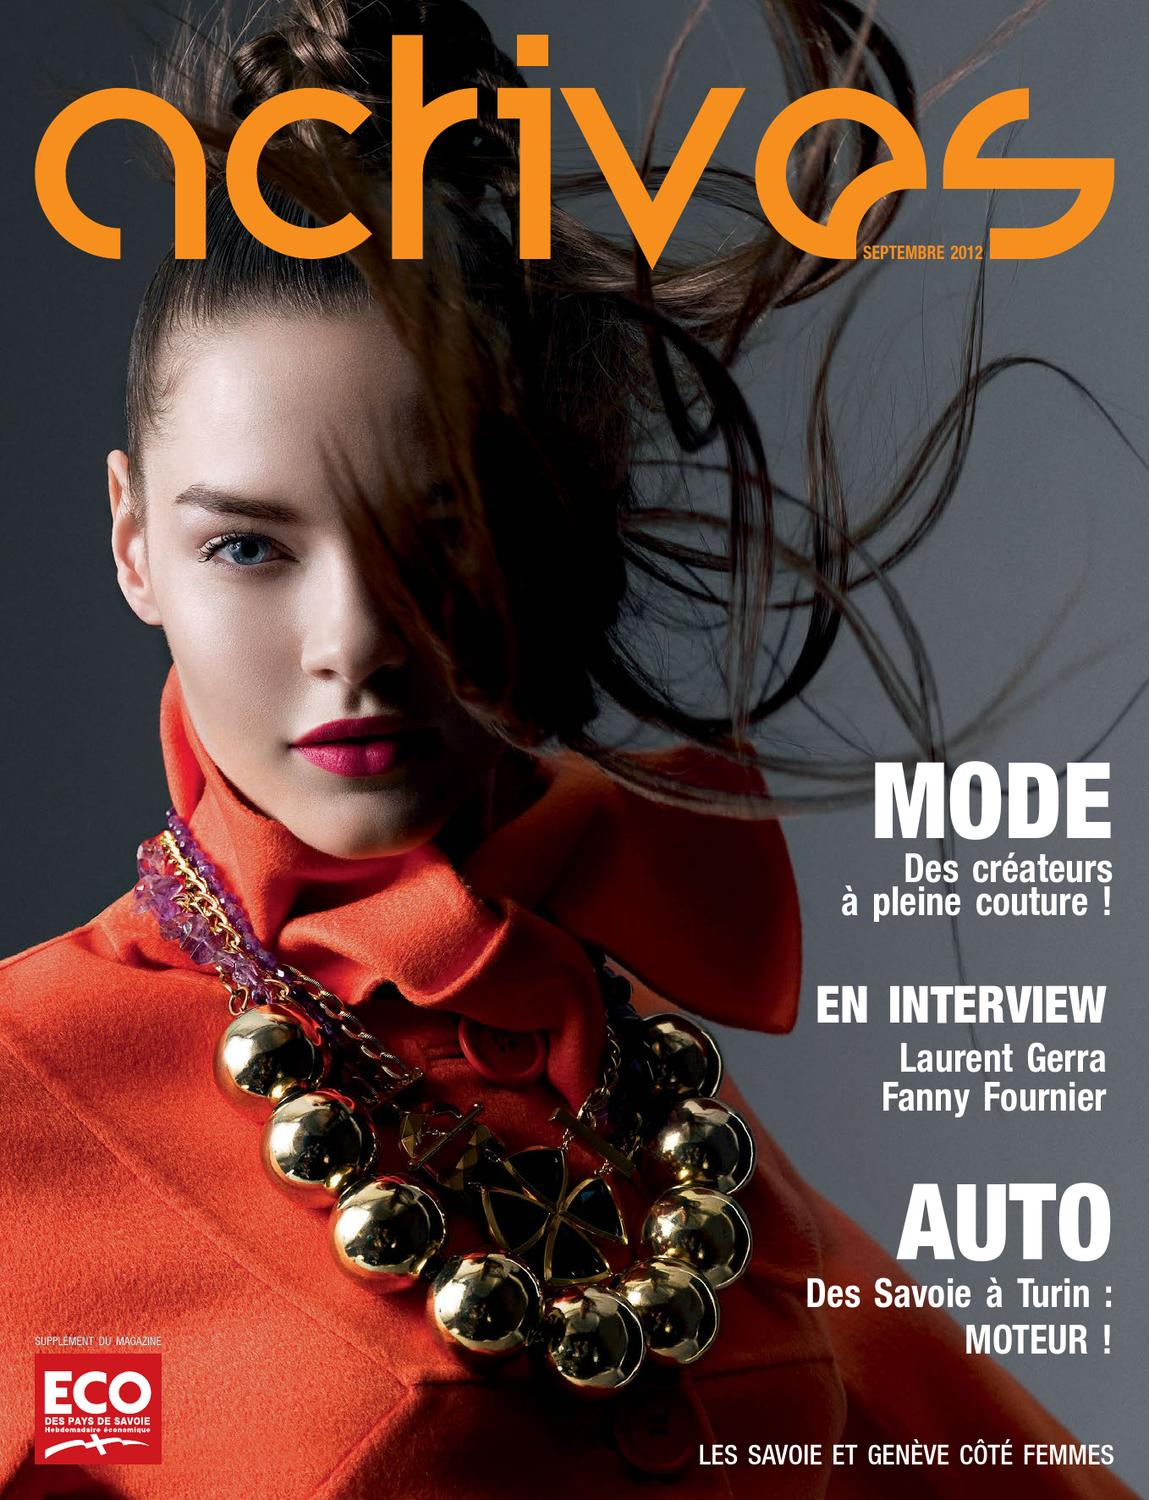 40a829956473 Actives magazine - Février 2012 by Sopreda 2 - issuu